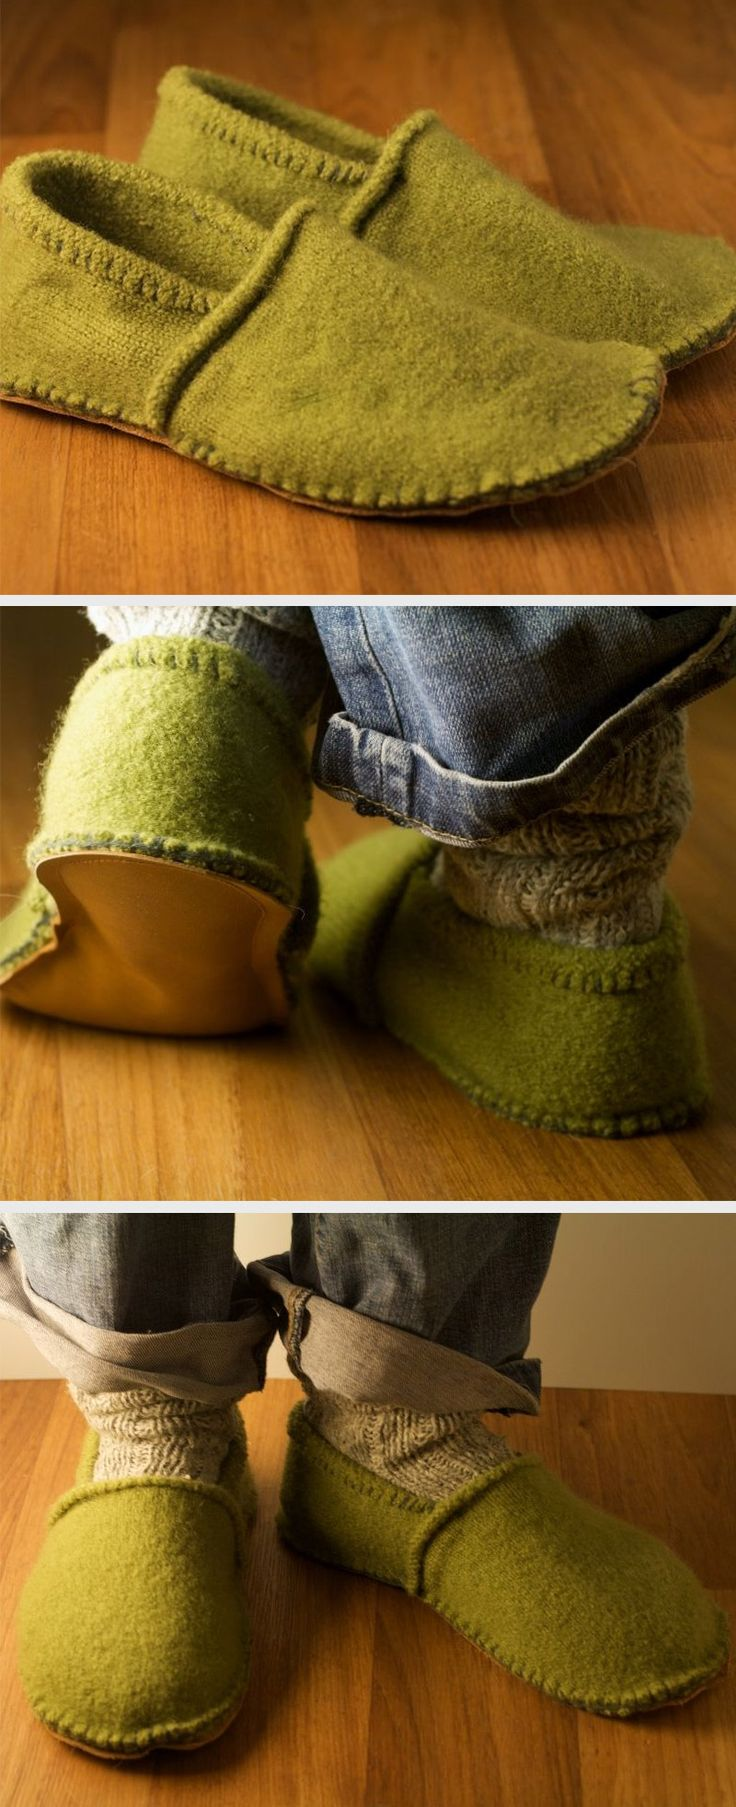 Shrunk your favorite sweater in the wash? No worries. turn it into a pair of cozy slippers!                                                                                                                                                                                 More